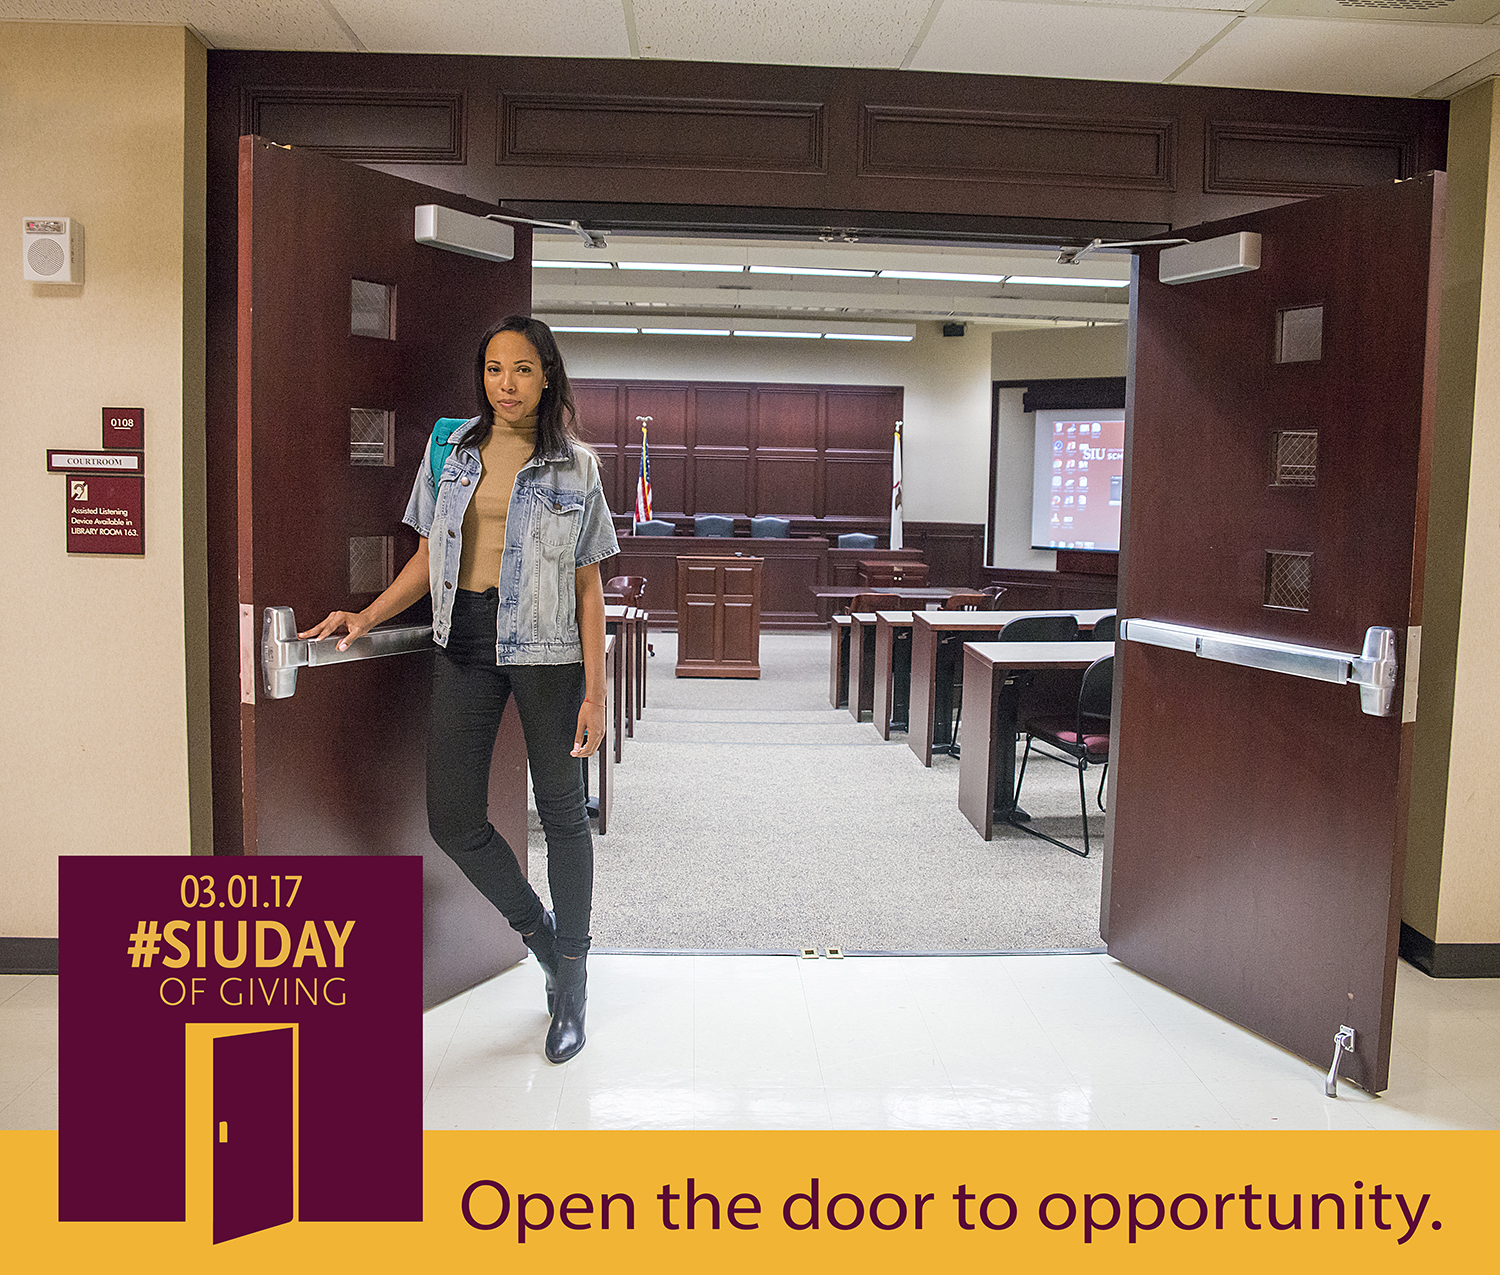 SIU Day of Giving – Open the door to opportunity at SIU School of Law